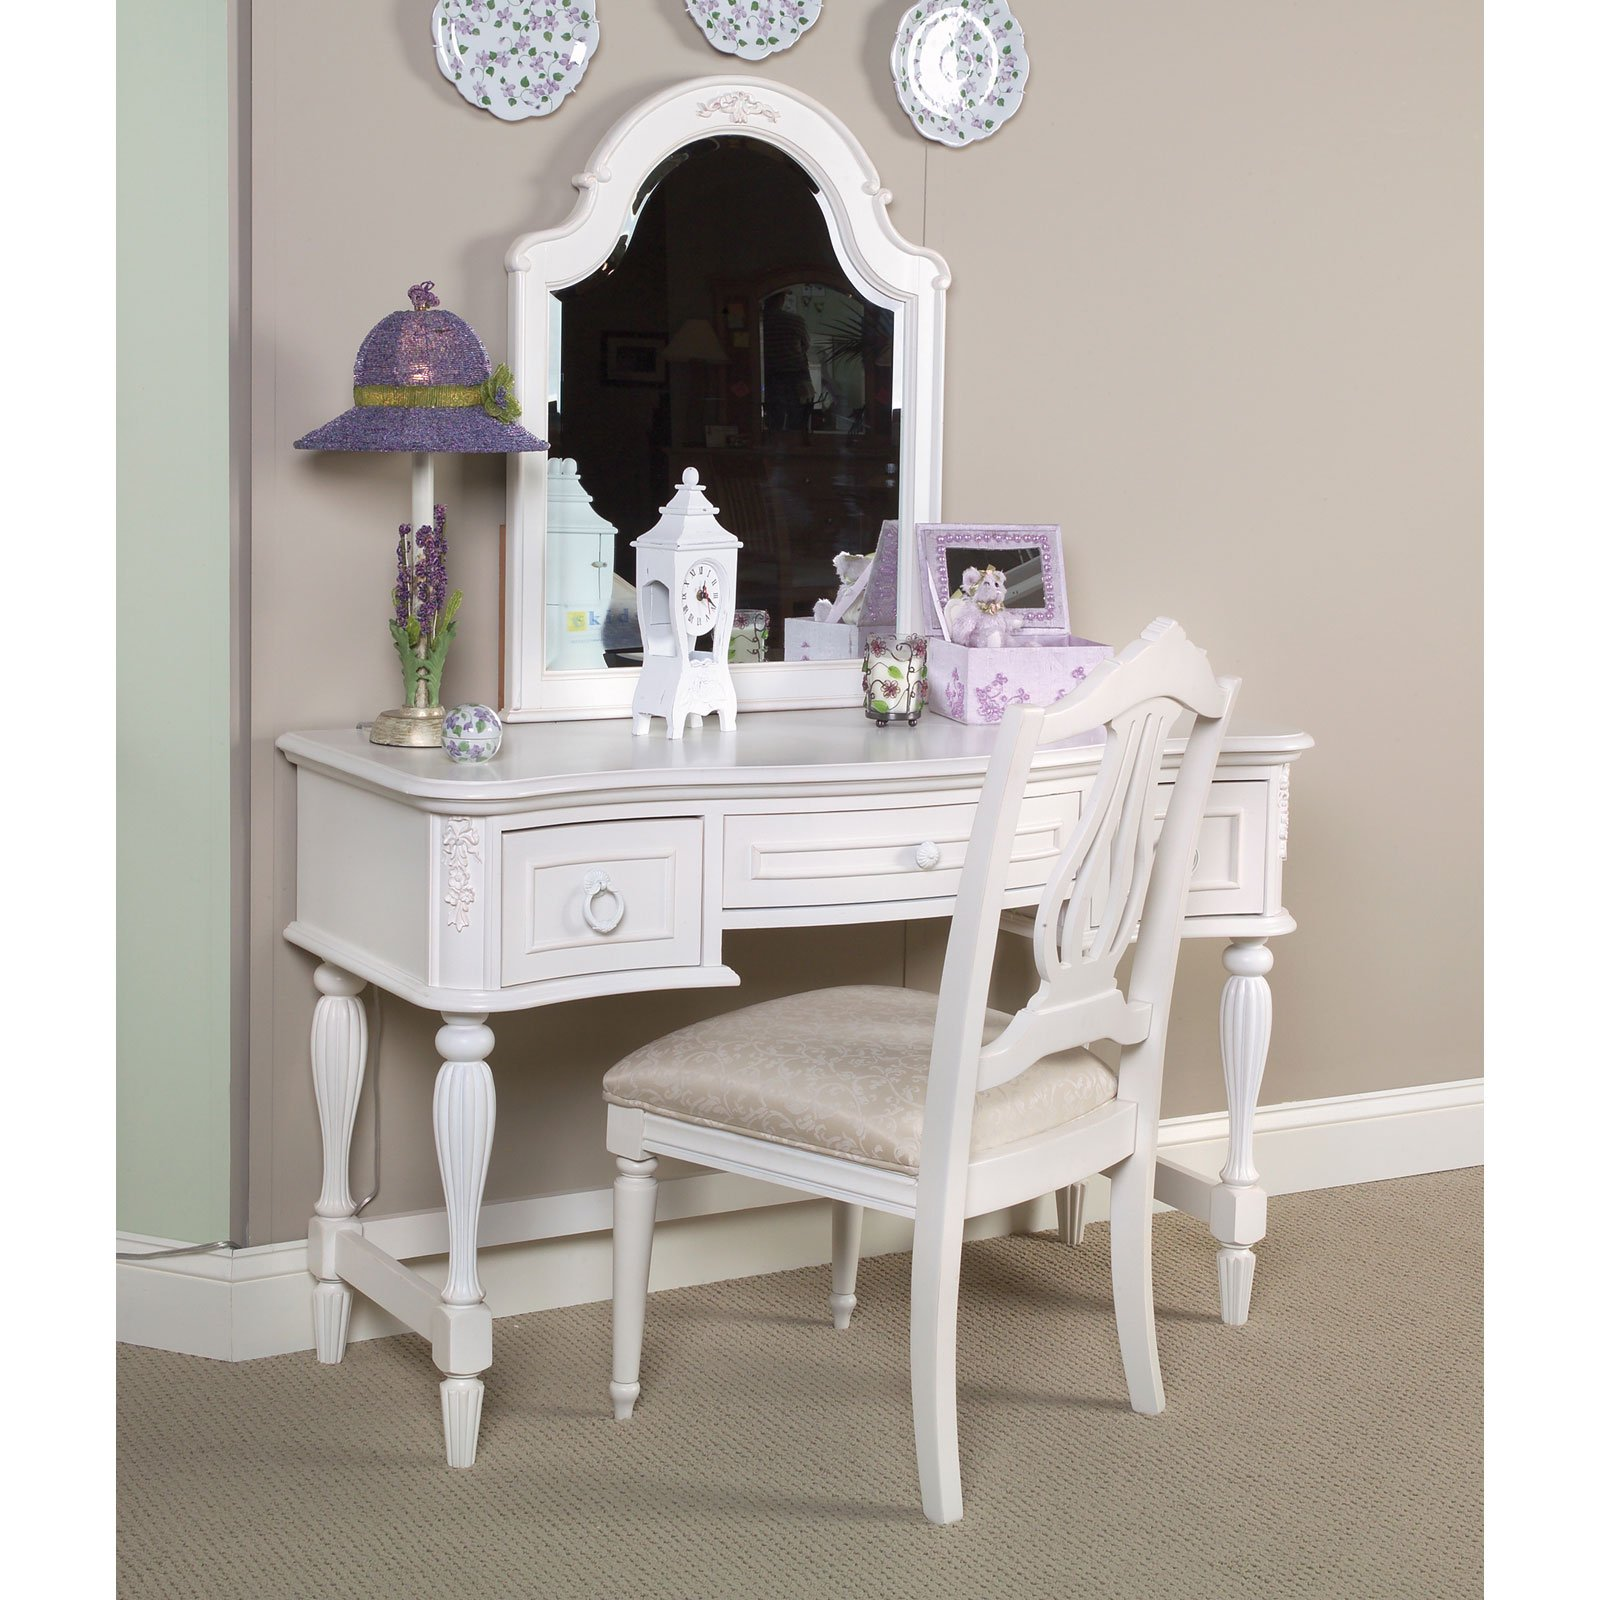 Mirrored Vanity Set for Elegant Bedroom Furniture Design: Discount Bedroom Vanity | Mirrored Vanity Set | Small Vanity Desk